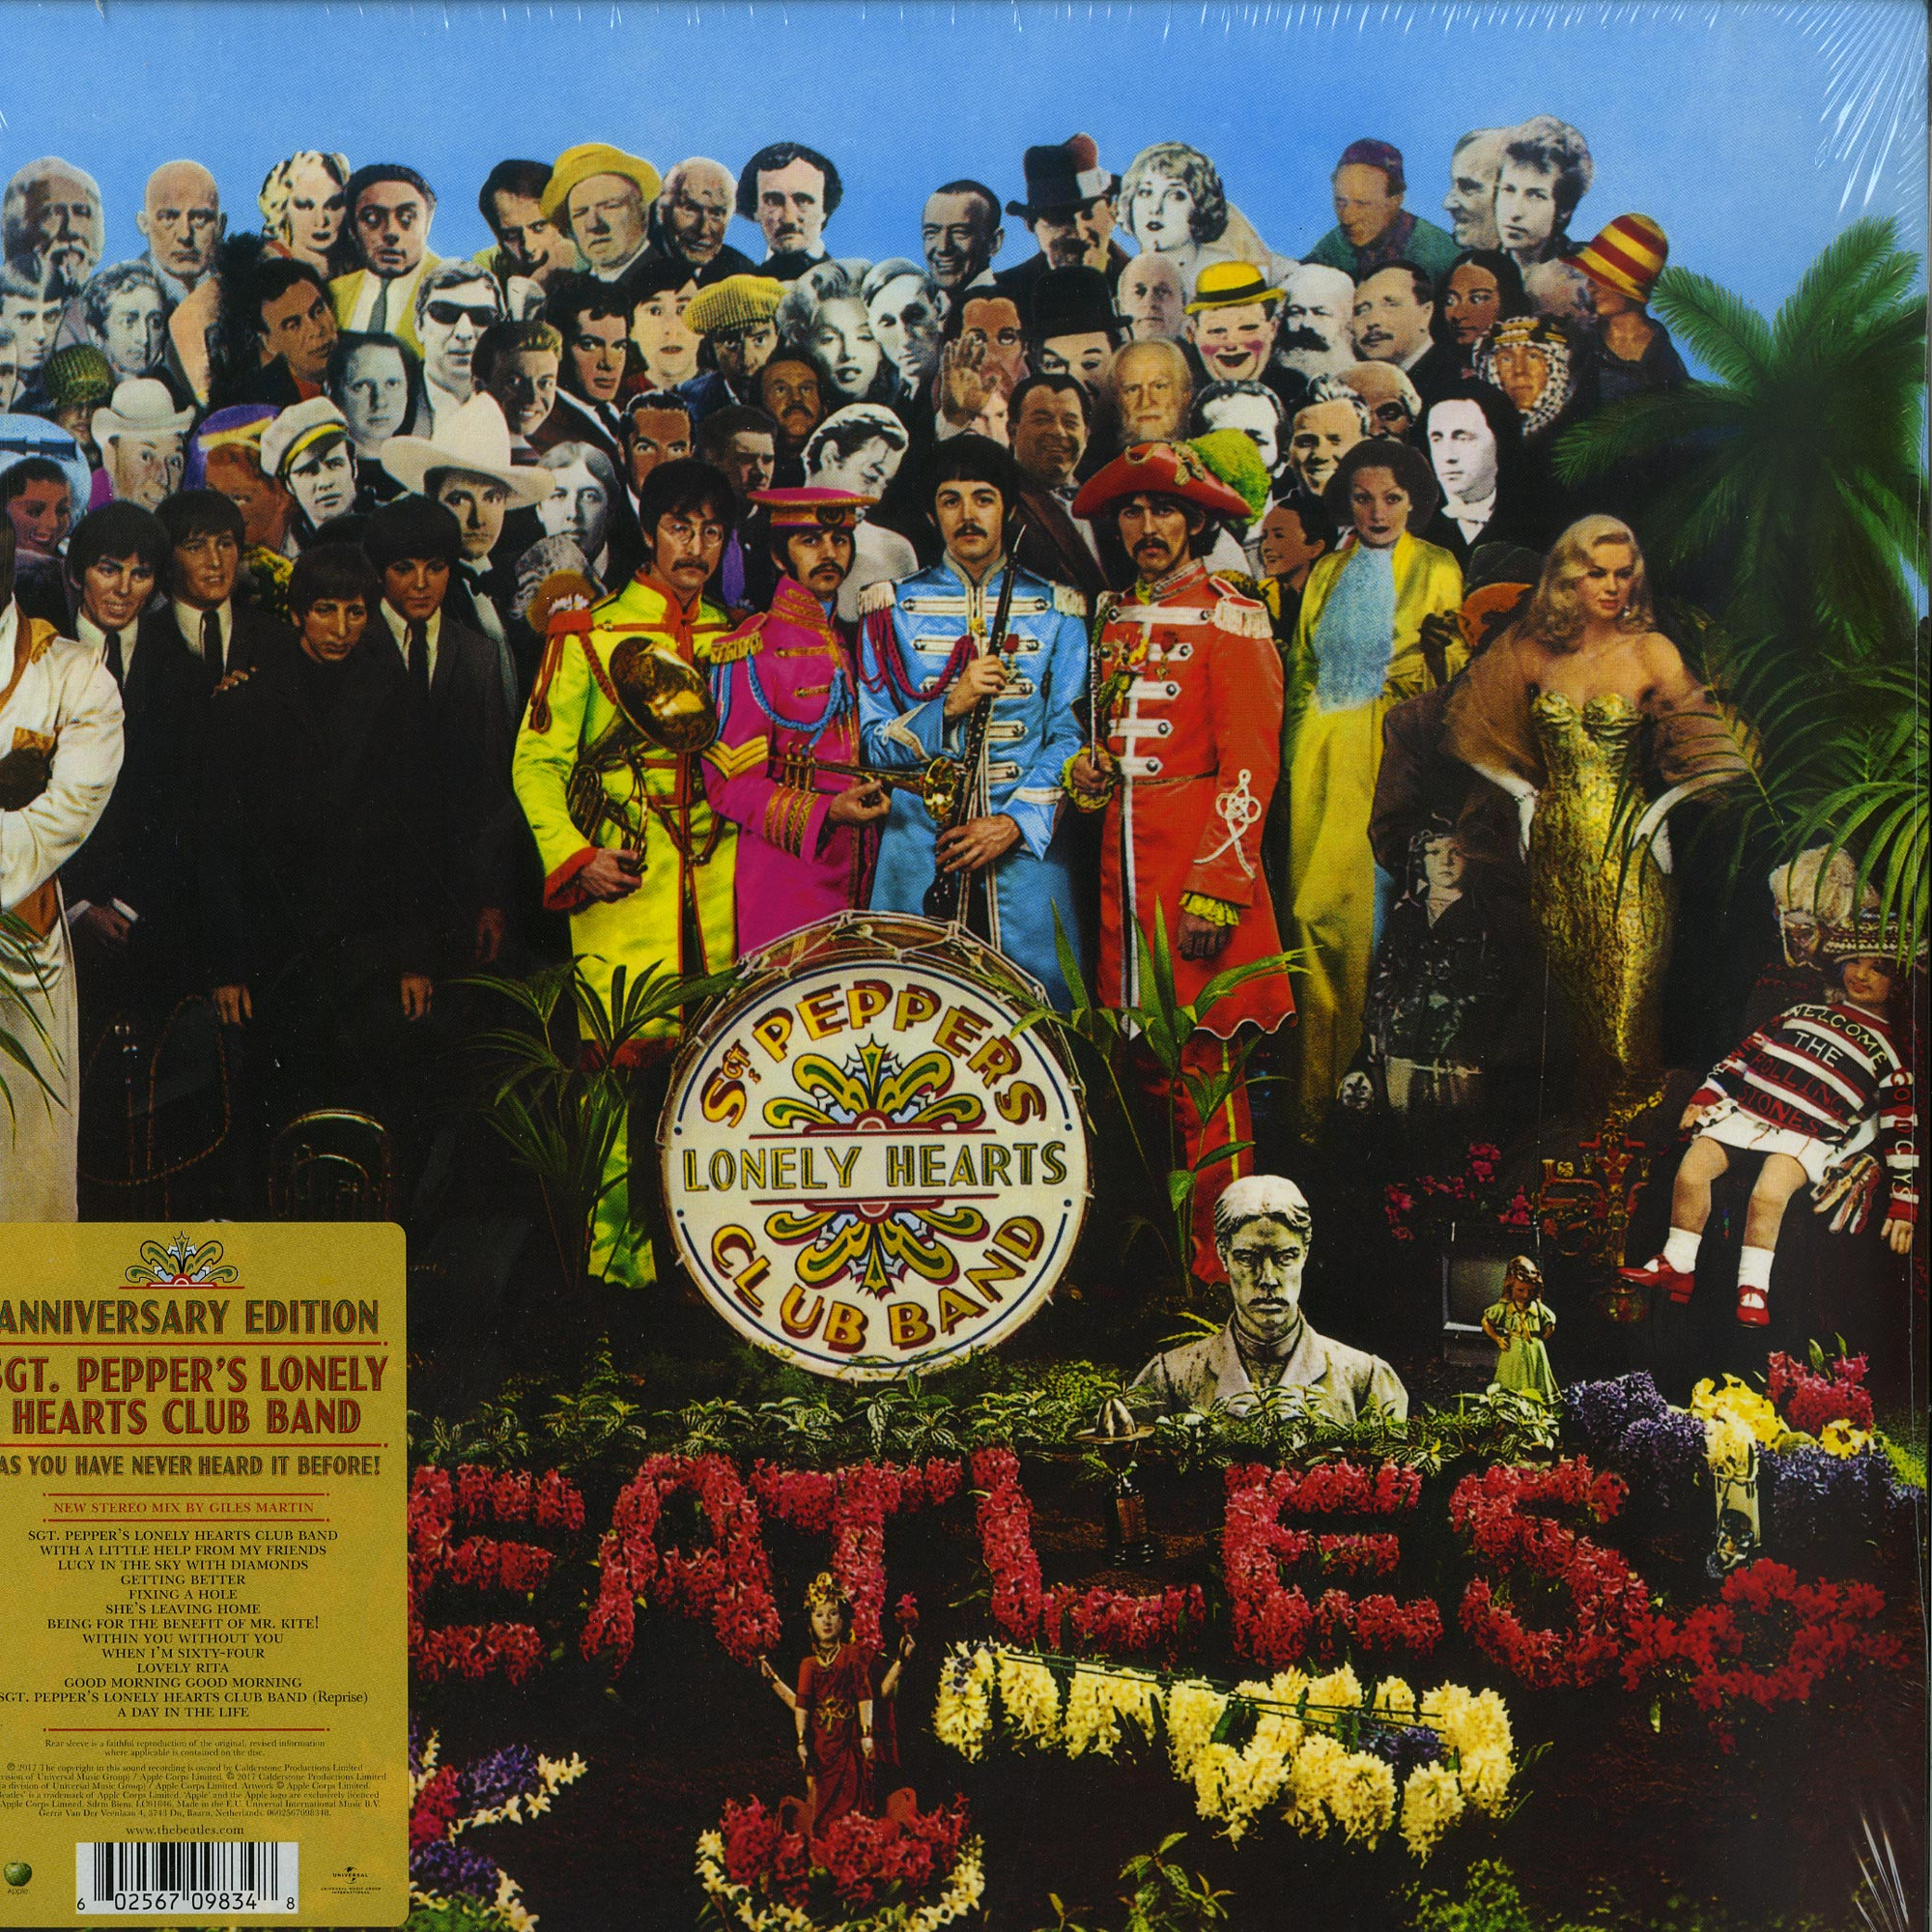 The Beatles - SGT. PEPPERS LONELY HEARTS CLUB BAND - ANNIVERSARY EDITION